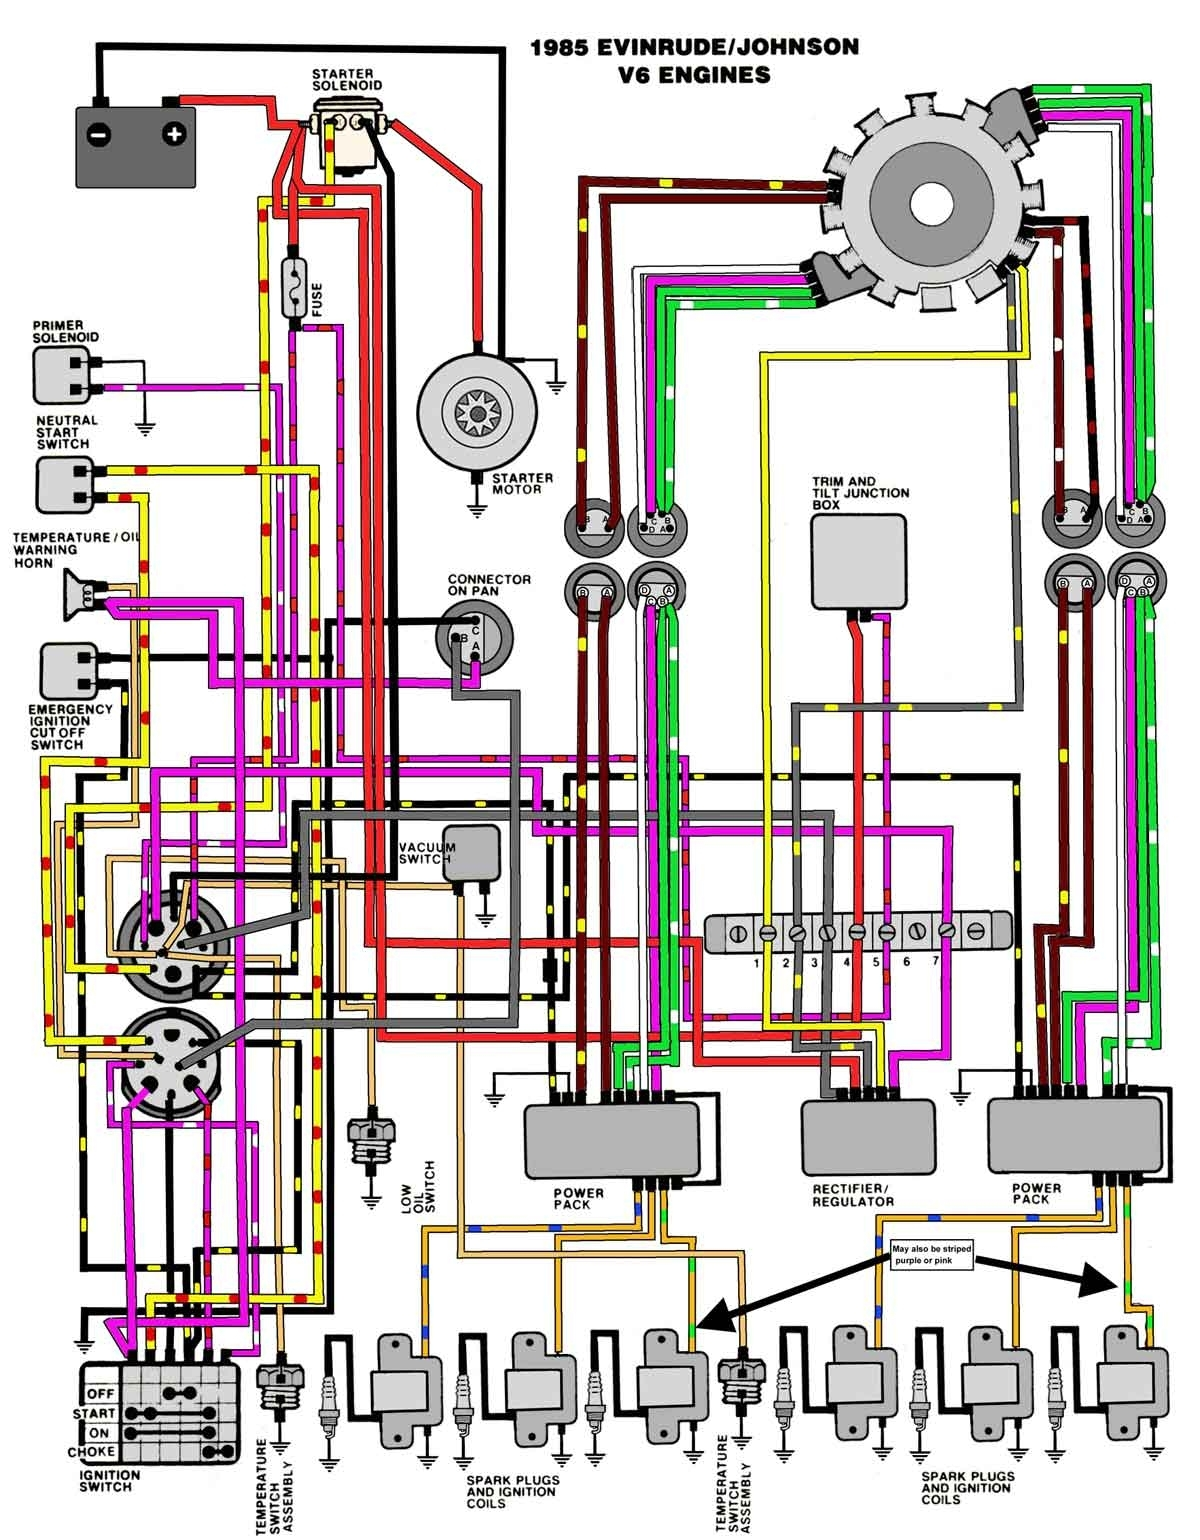 Johnson 70 Hp Wiring Diagram Auto Electrical Wiring Diagram Johnson 25 HP  Wiring Diagram Johnson 55 Hp Wiring Diagram